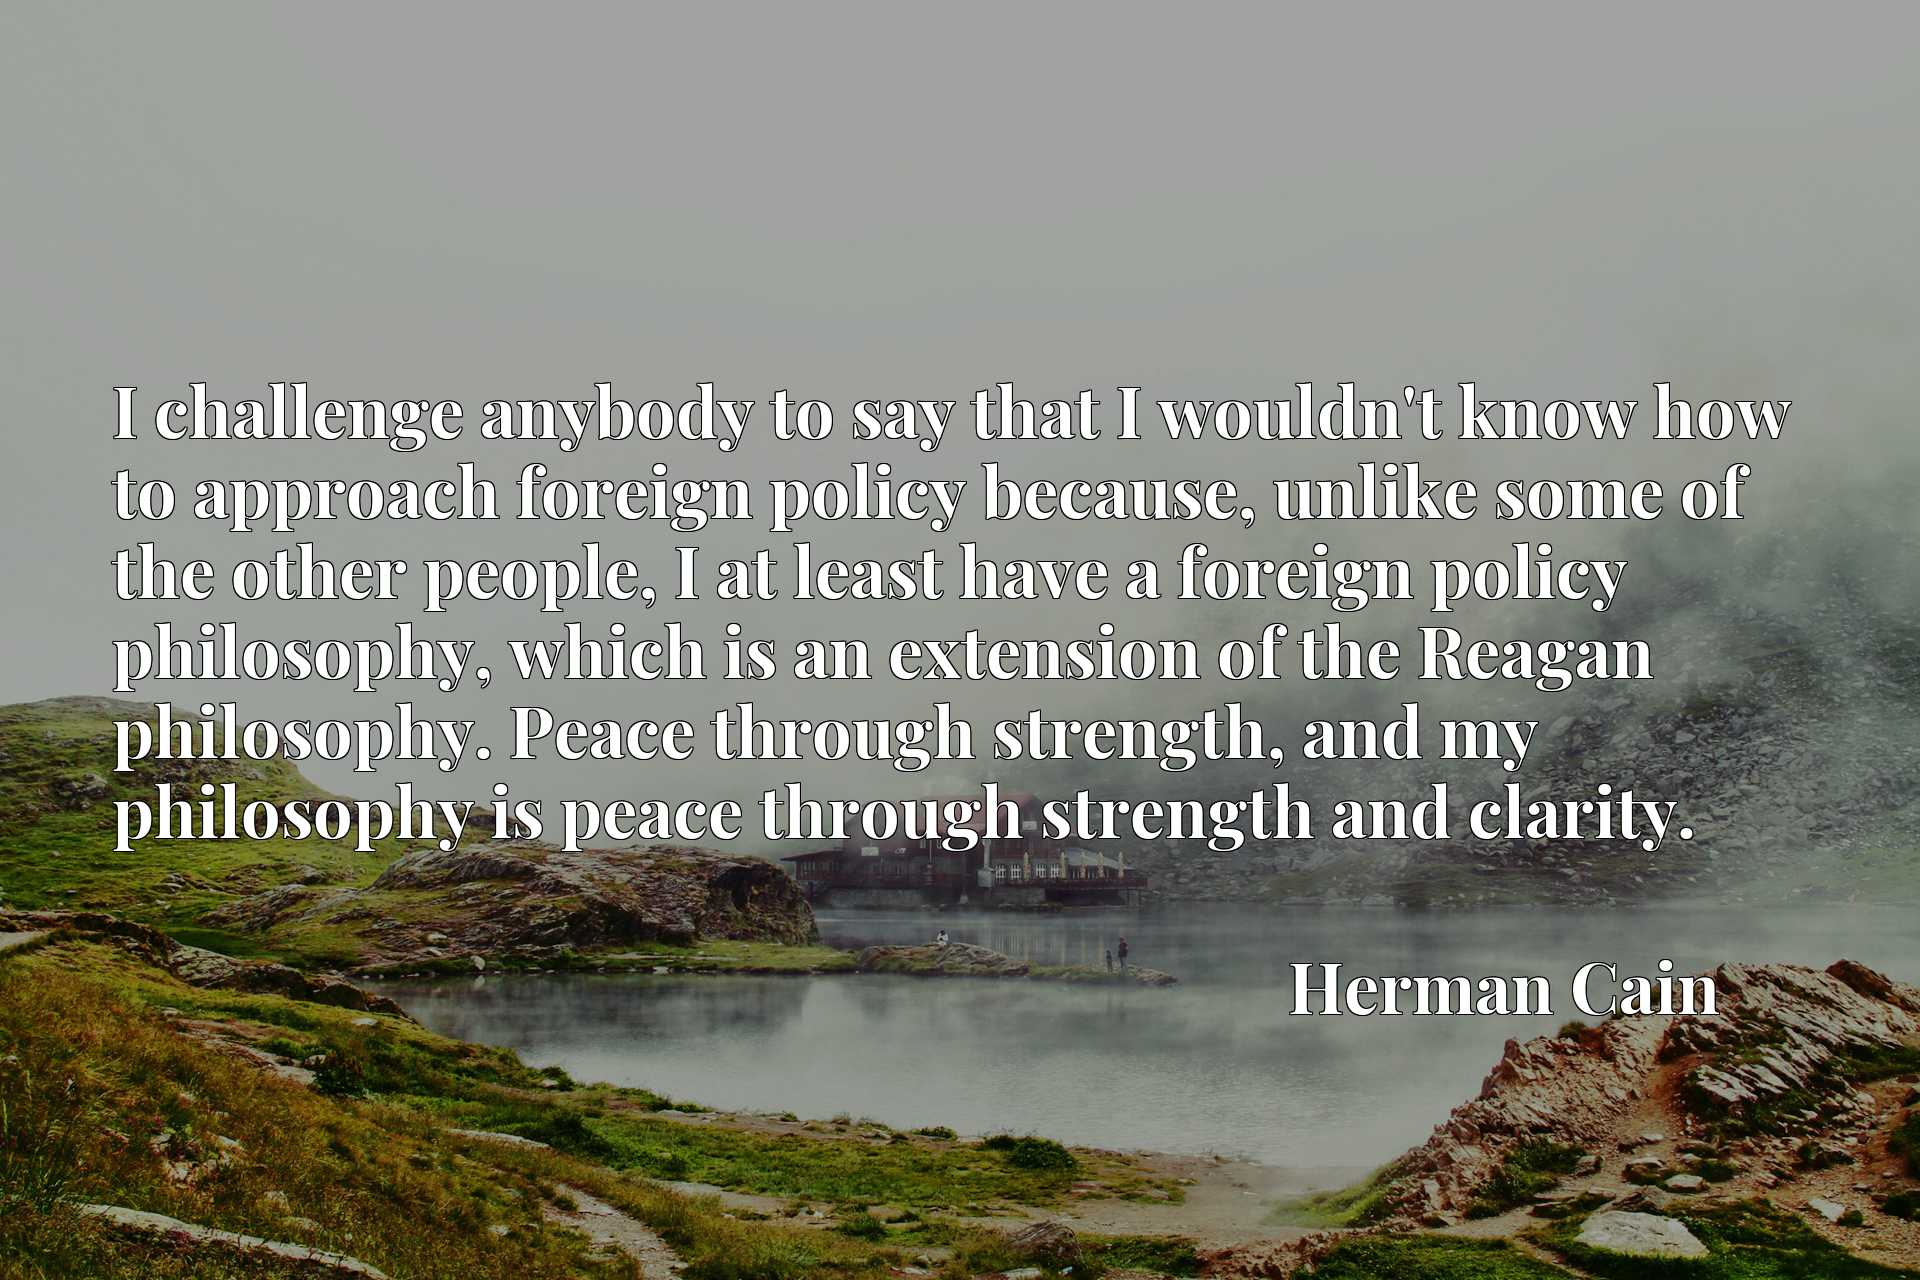 I challenge anybody to say that I wouldn't know how to approach foreign policy because, unlike some of the other people, I at least have a foreign policy philosophy, which is an extension of the Reagan philosophy. Peace through strength, and my philosophy is peace through strength and clarity.